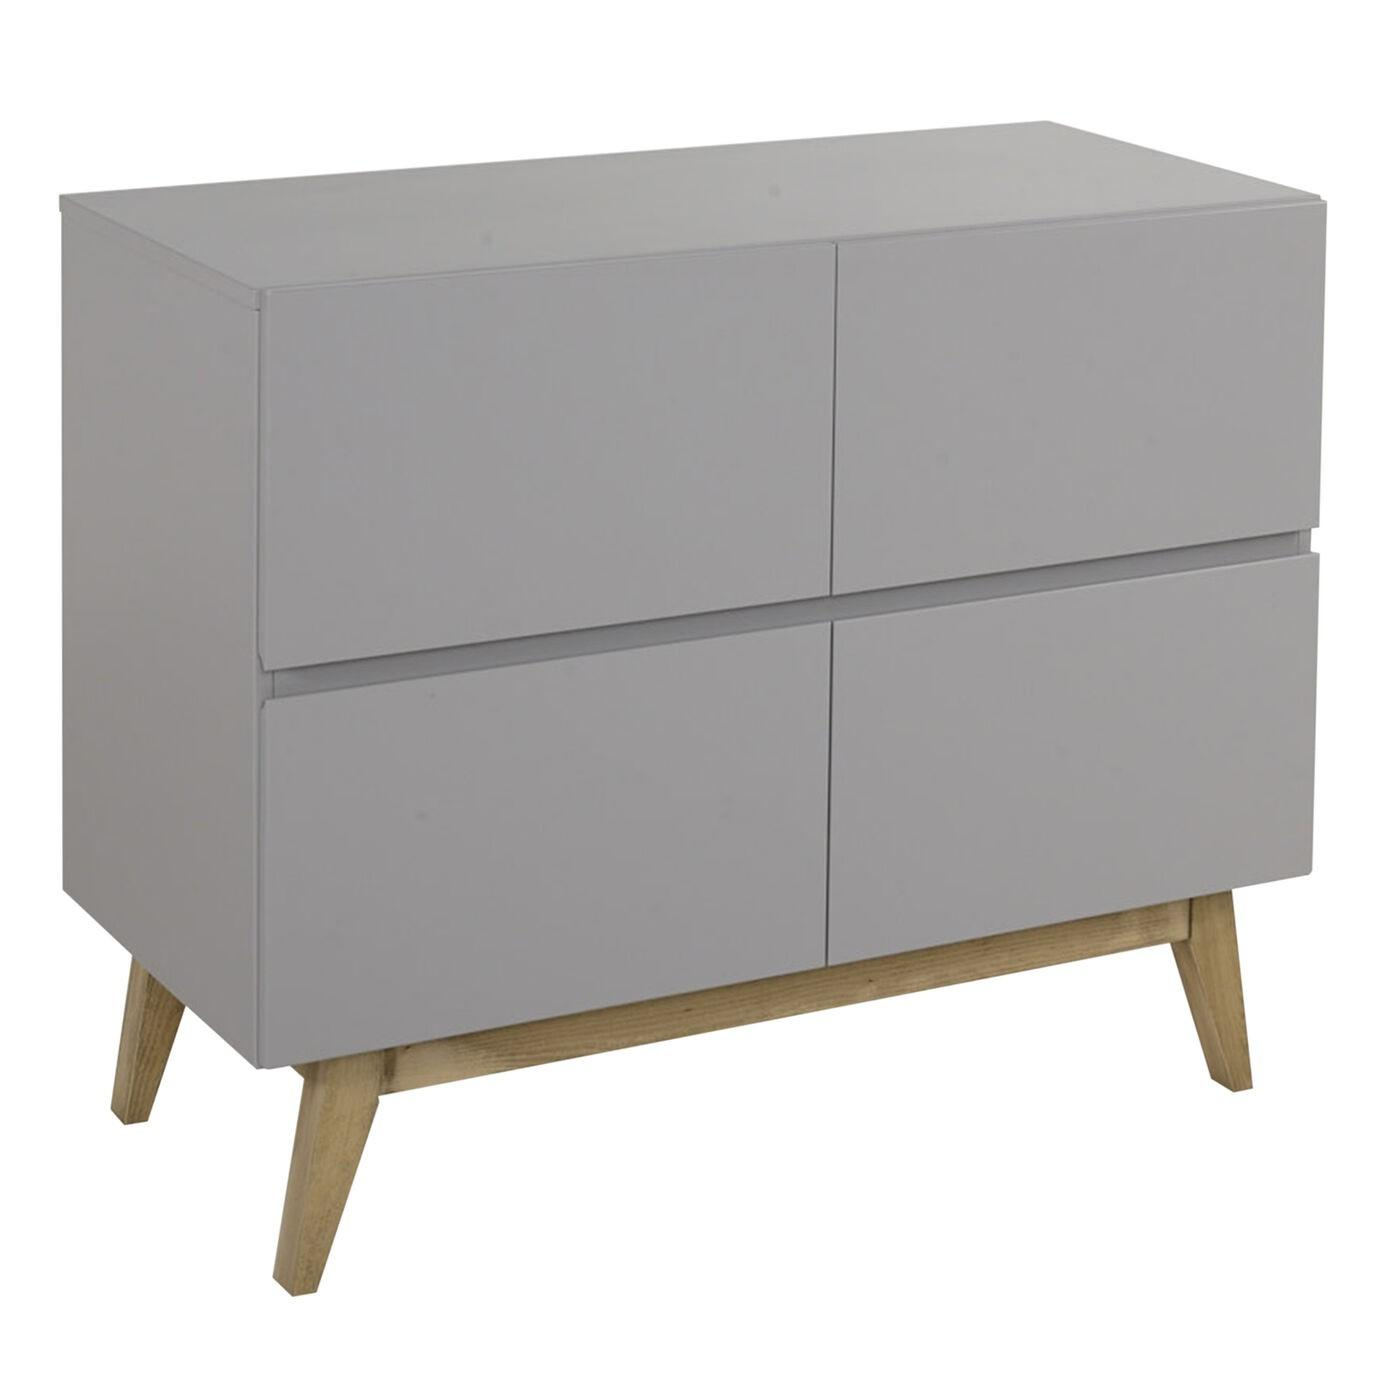 Quax - Trendy Commode 4 Laden - Griffin Grey